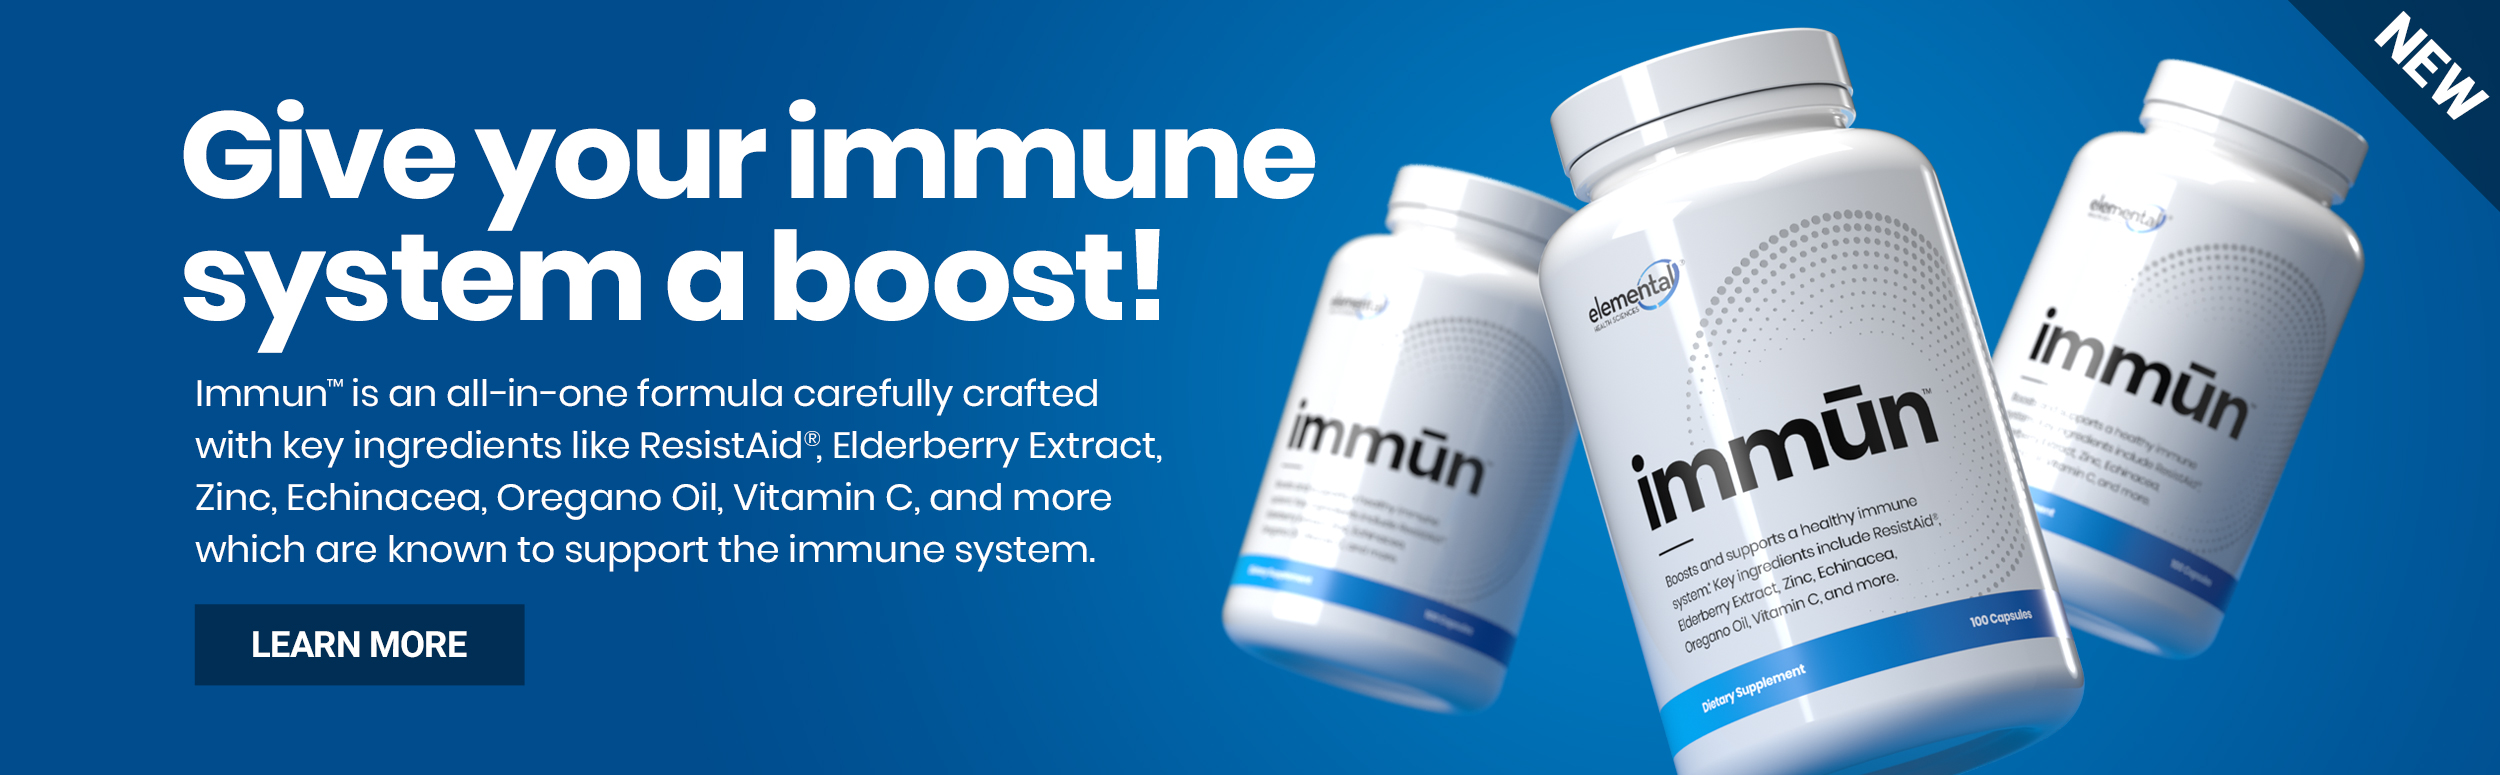 elemental immun - give your immune system a boost! Learn more